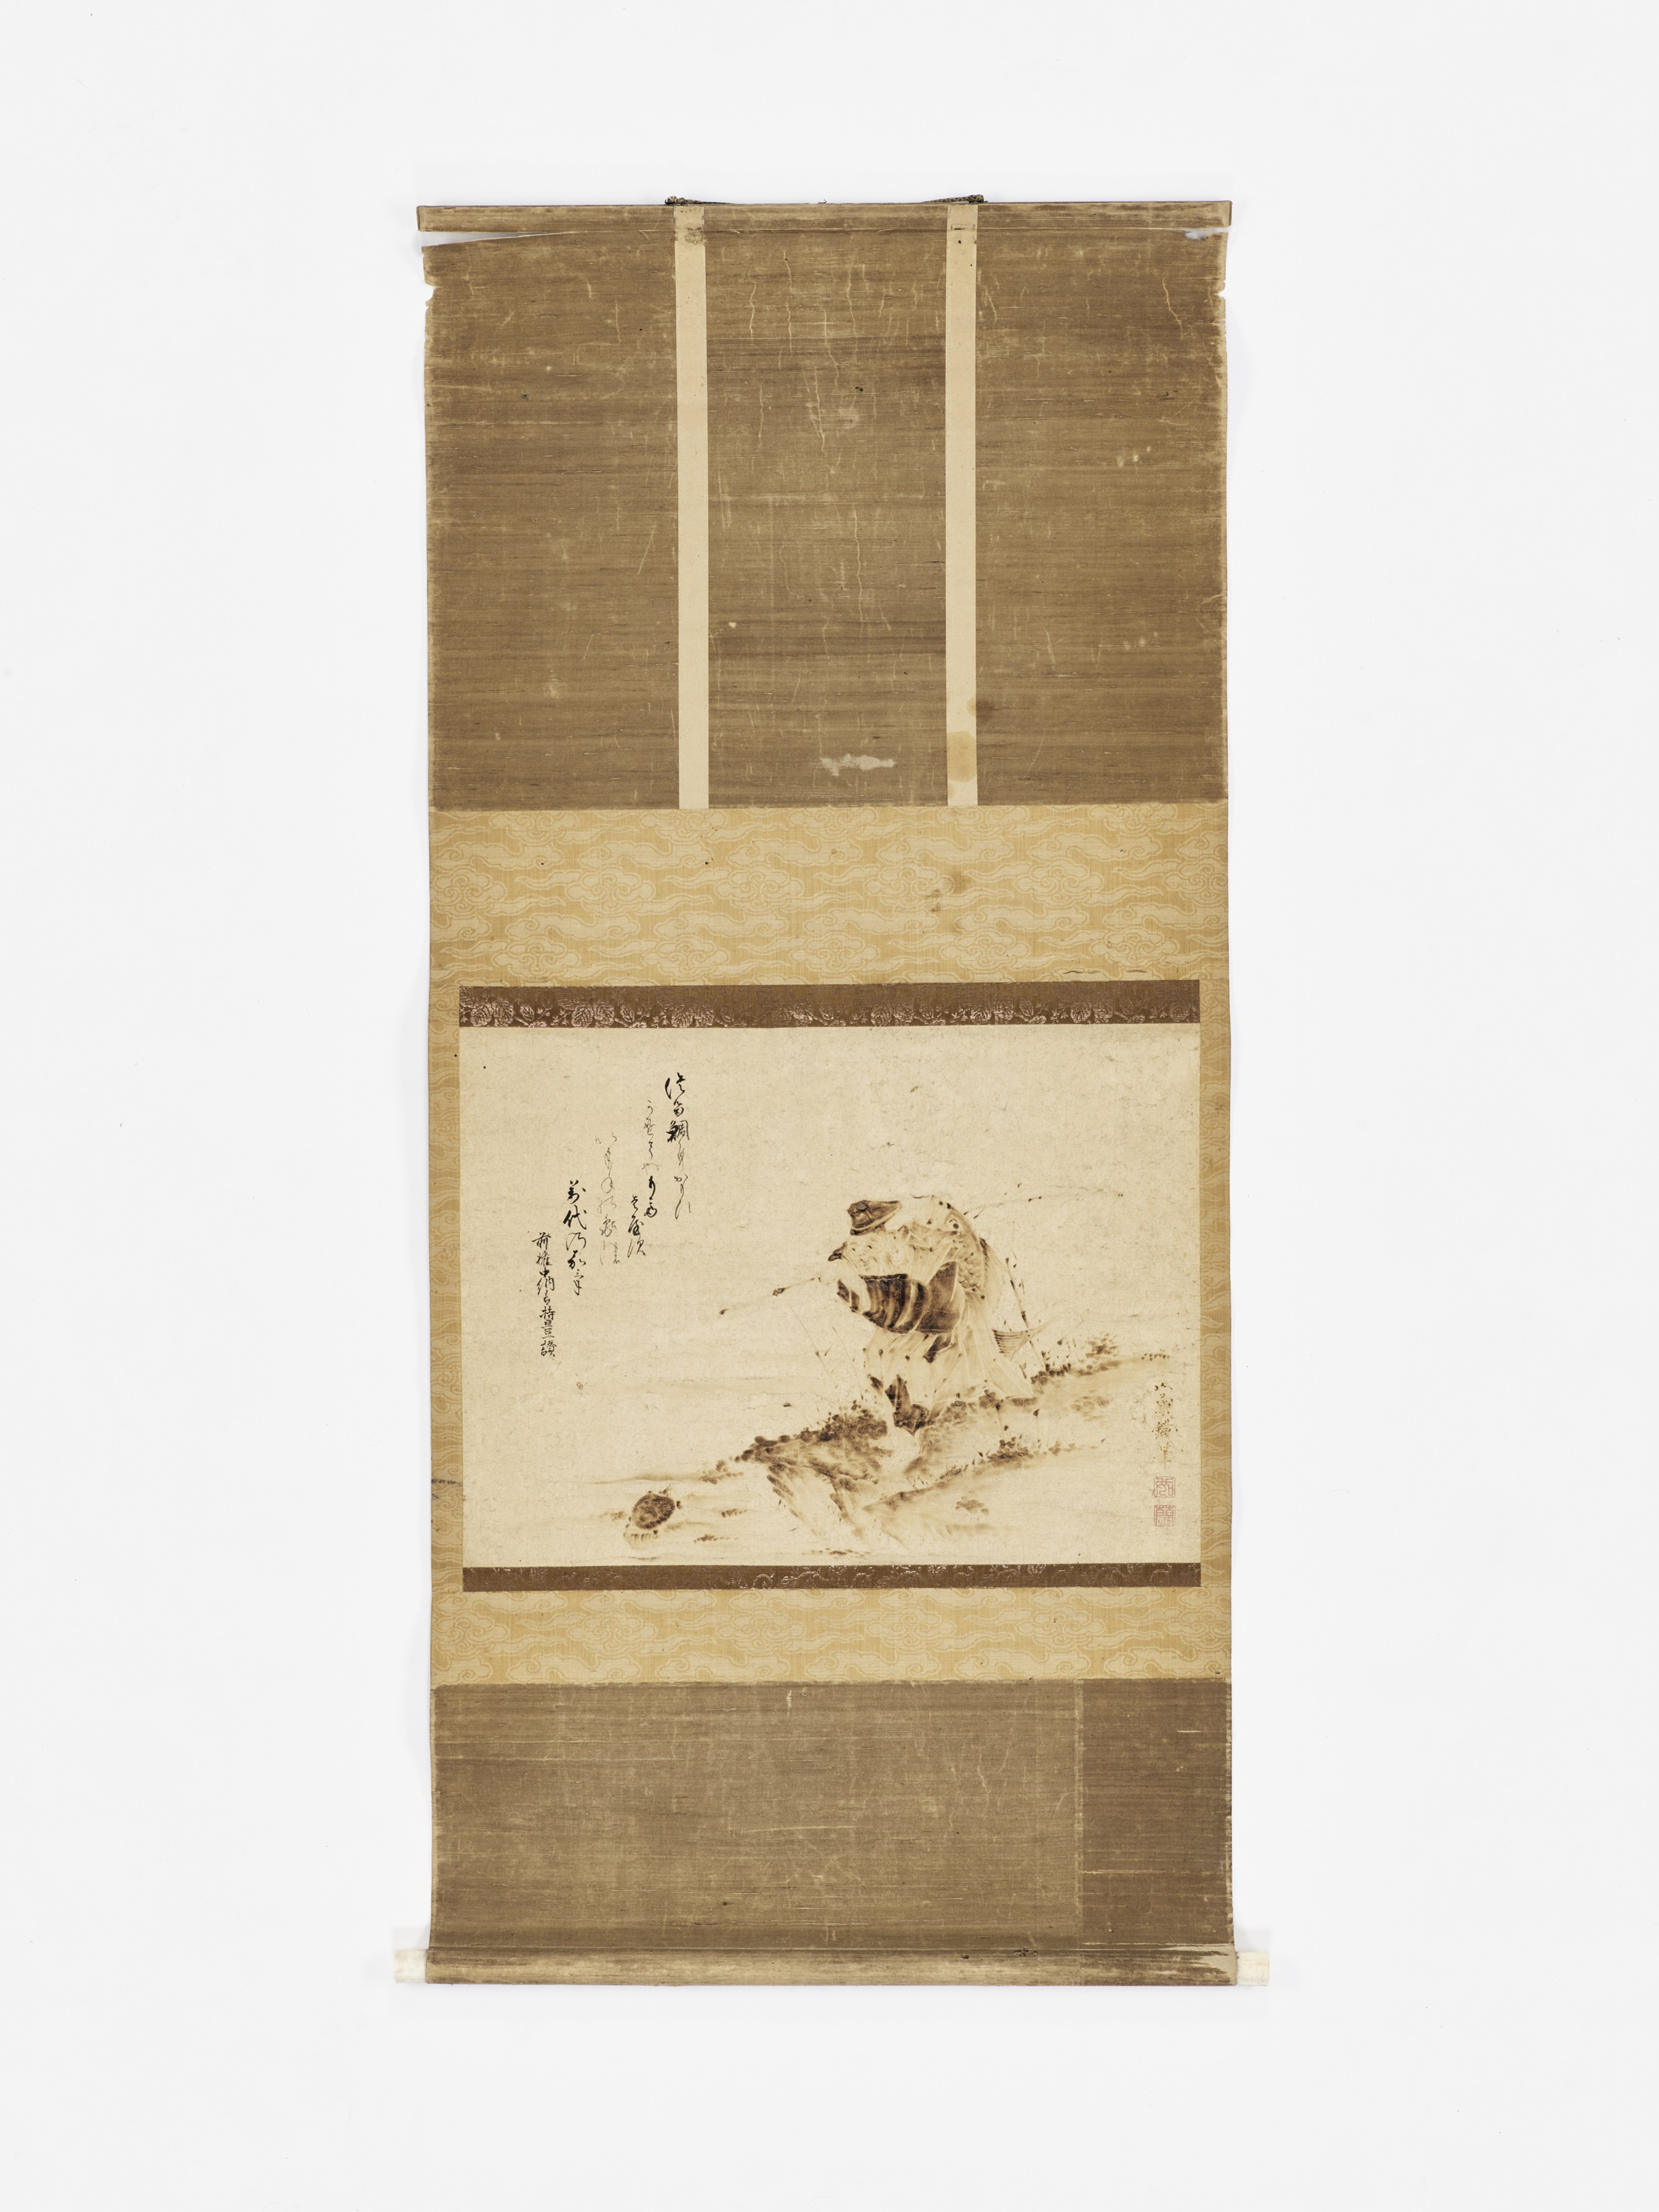 A SCROLL PAINTING OF EBISU FISHING FOR A MINOGAME